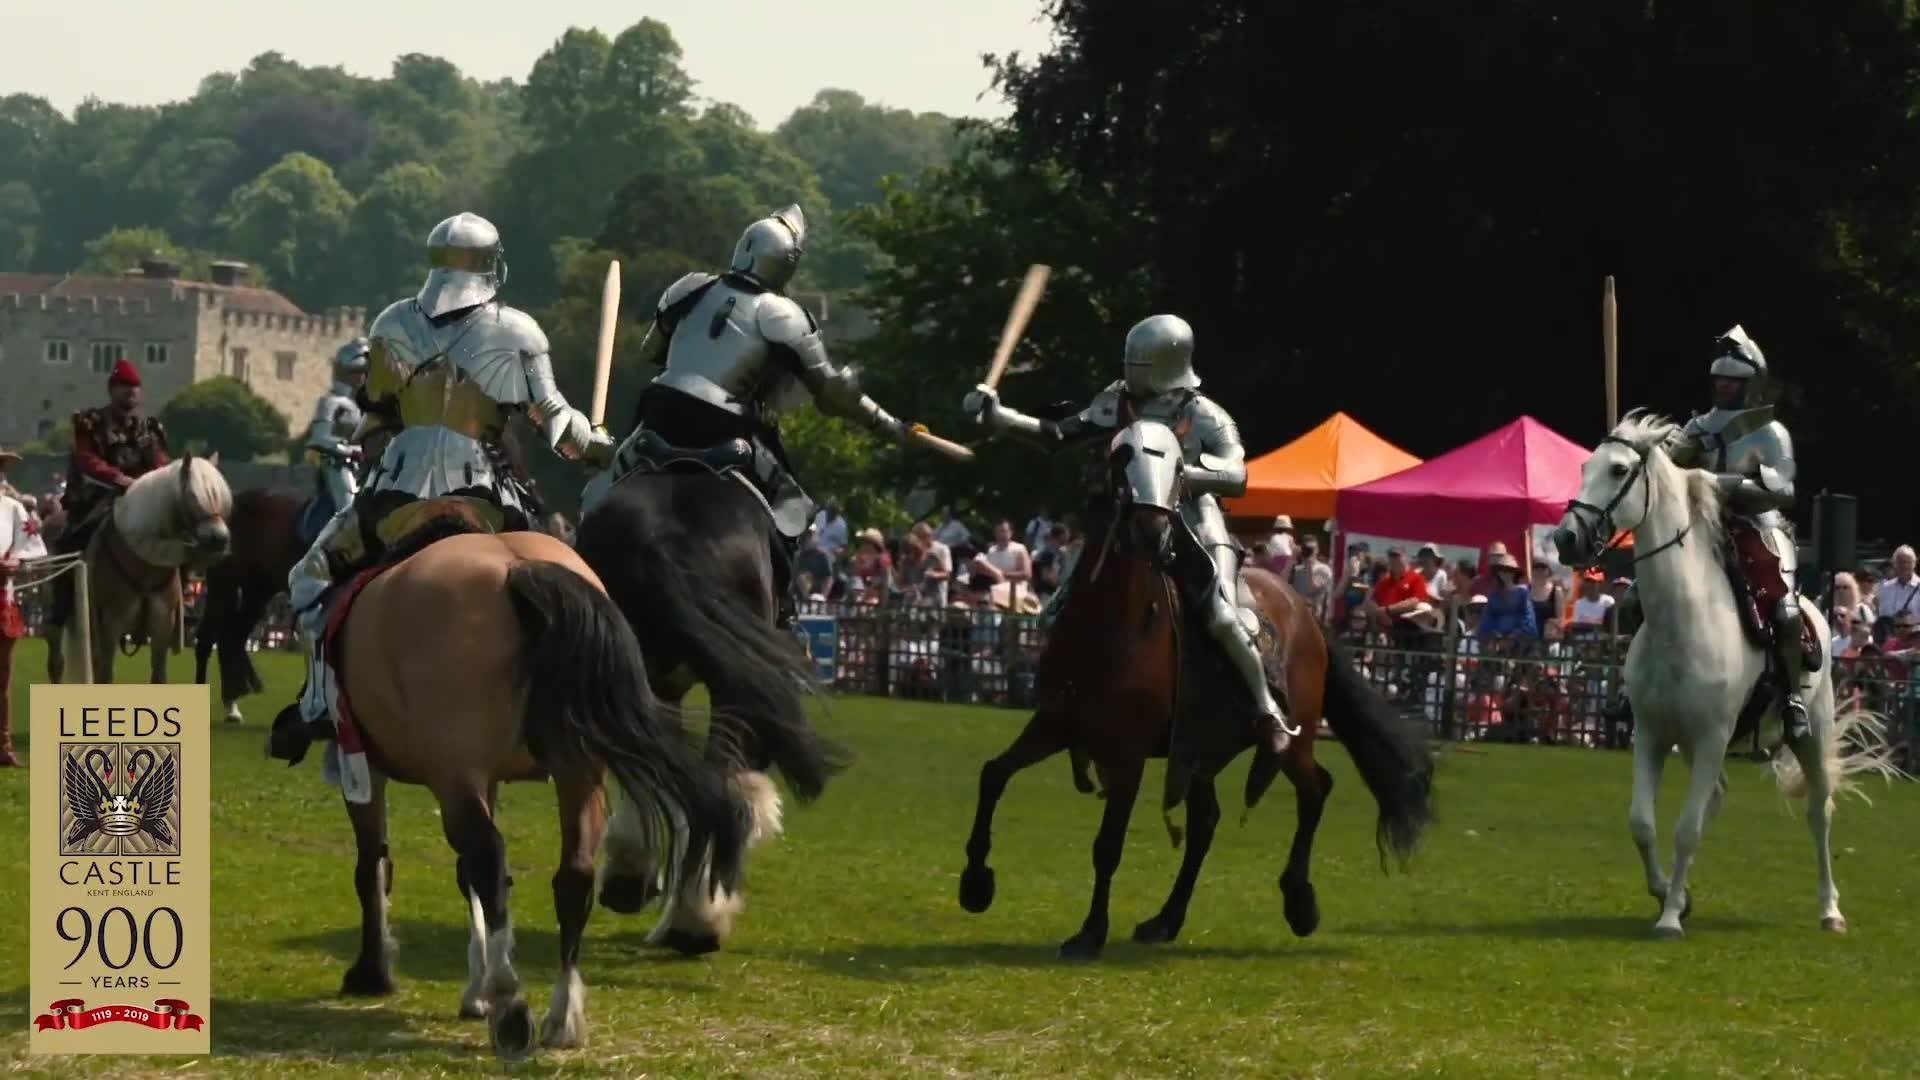 Destrier & Chevalerie Initiatique at Leeds  Castle 2019